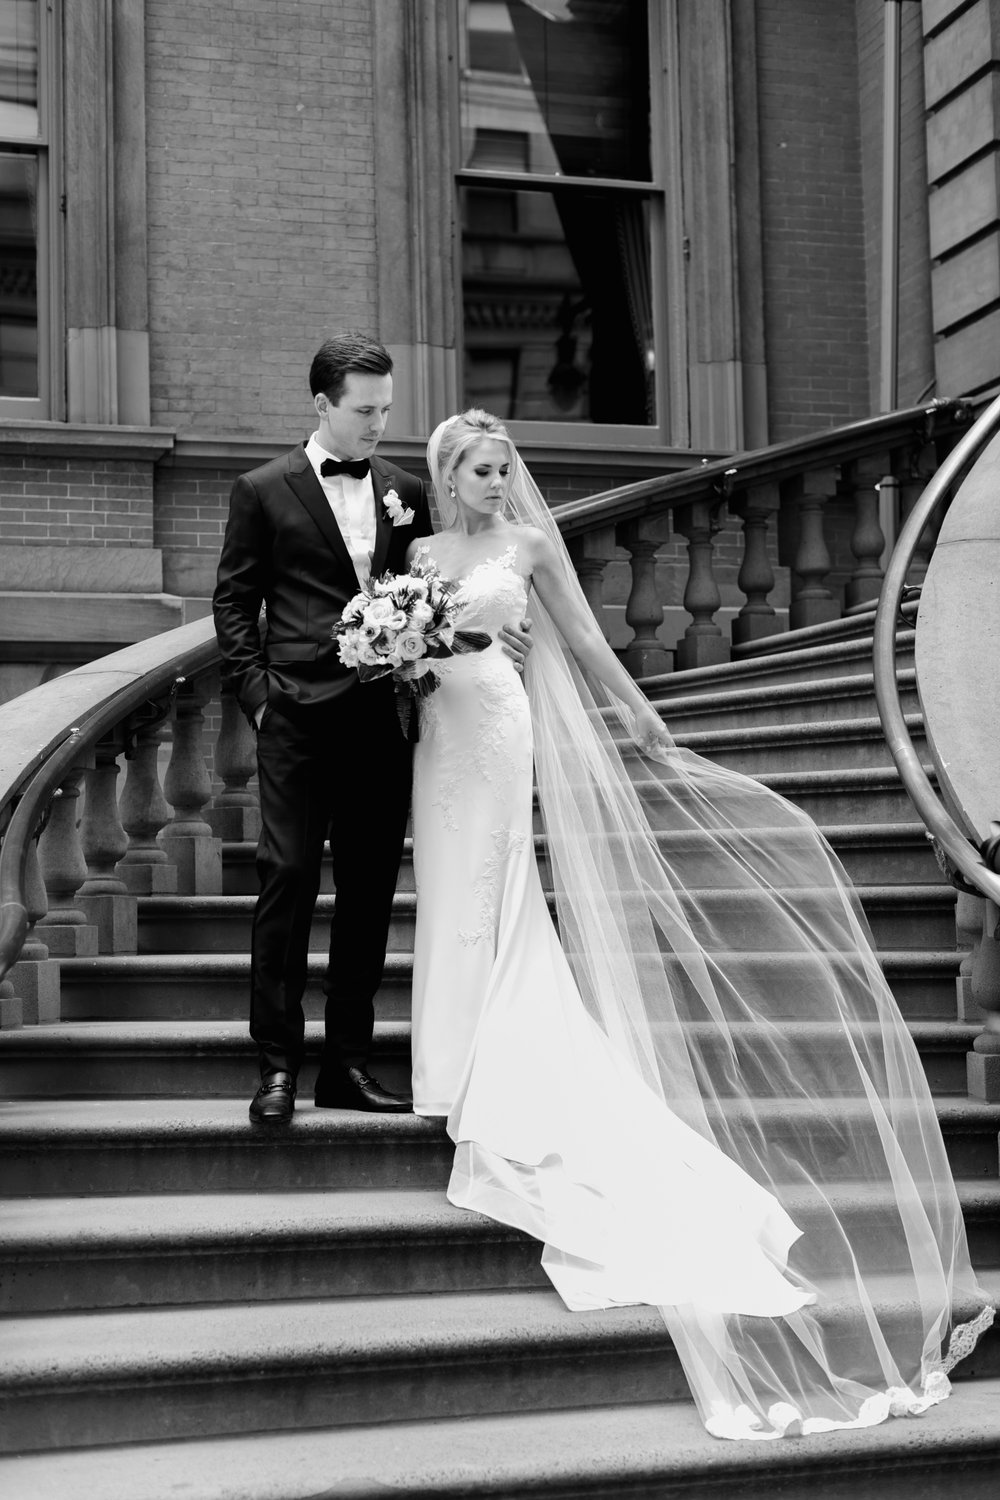 photography-wedding-weddings-natural-candid-union league-philadelphia-black tie-city hall-broad street-editorial-modern-fine-art-16.JPG